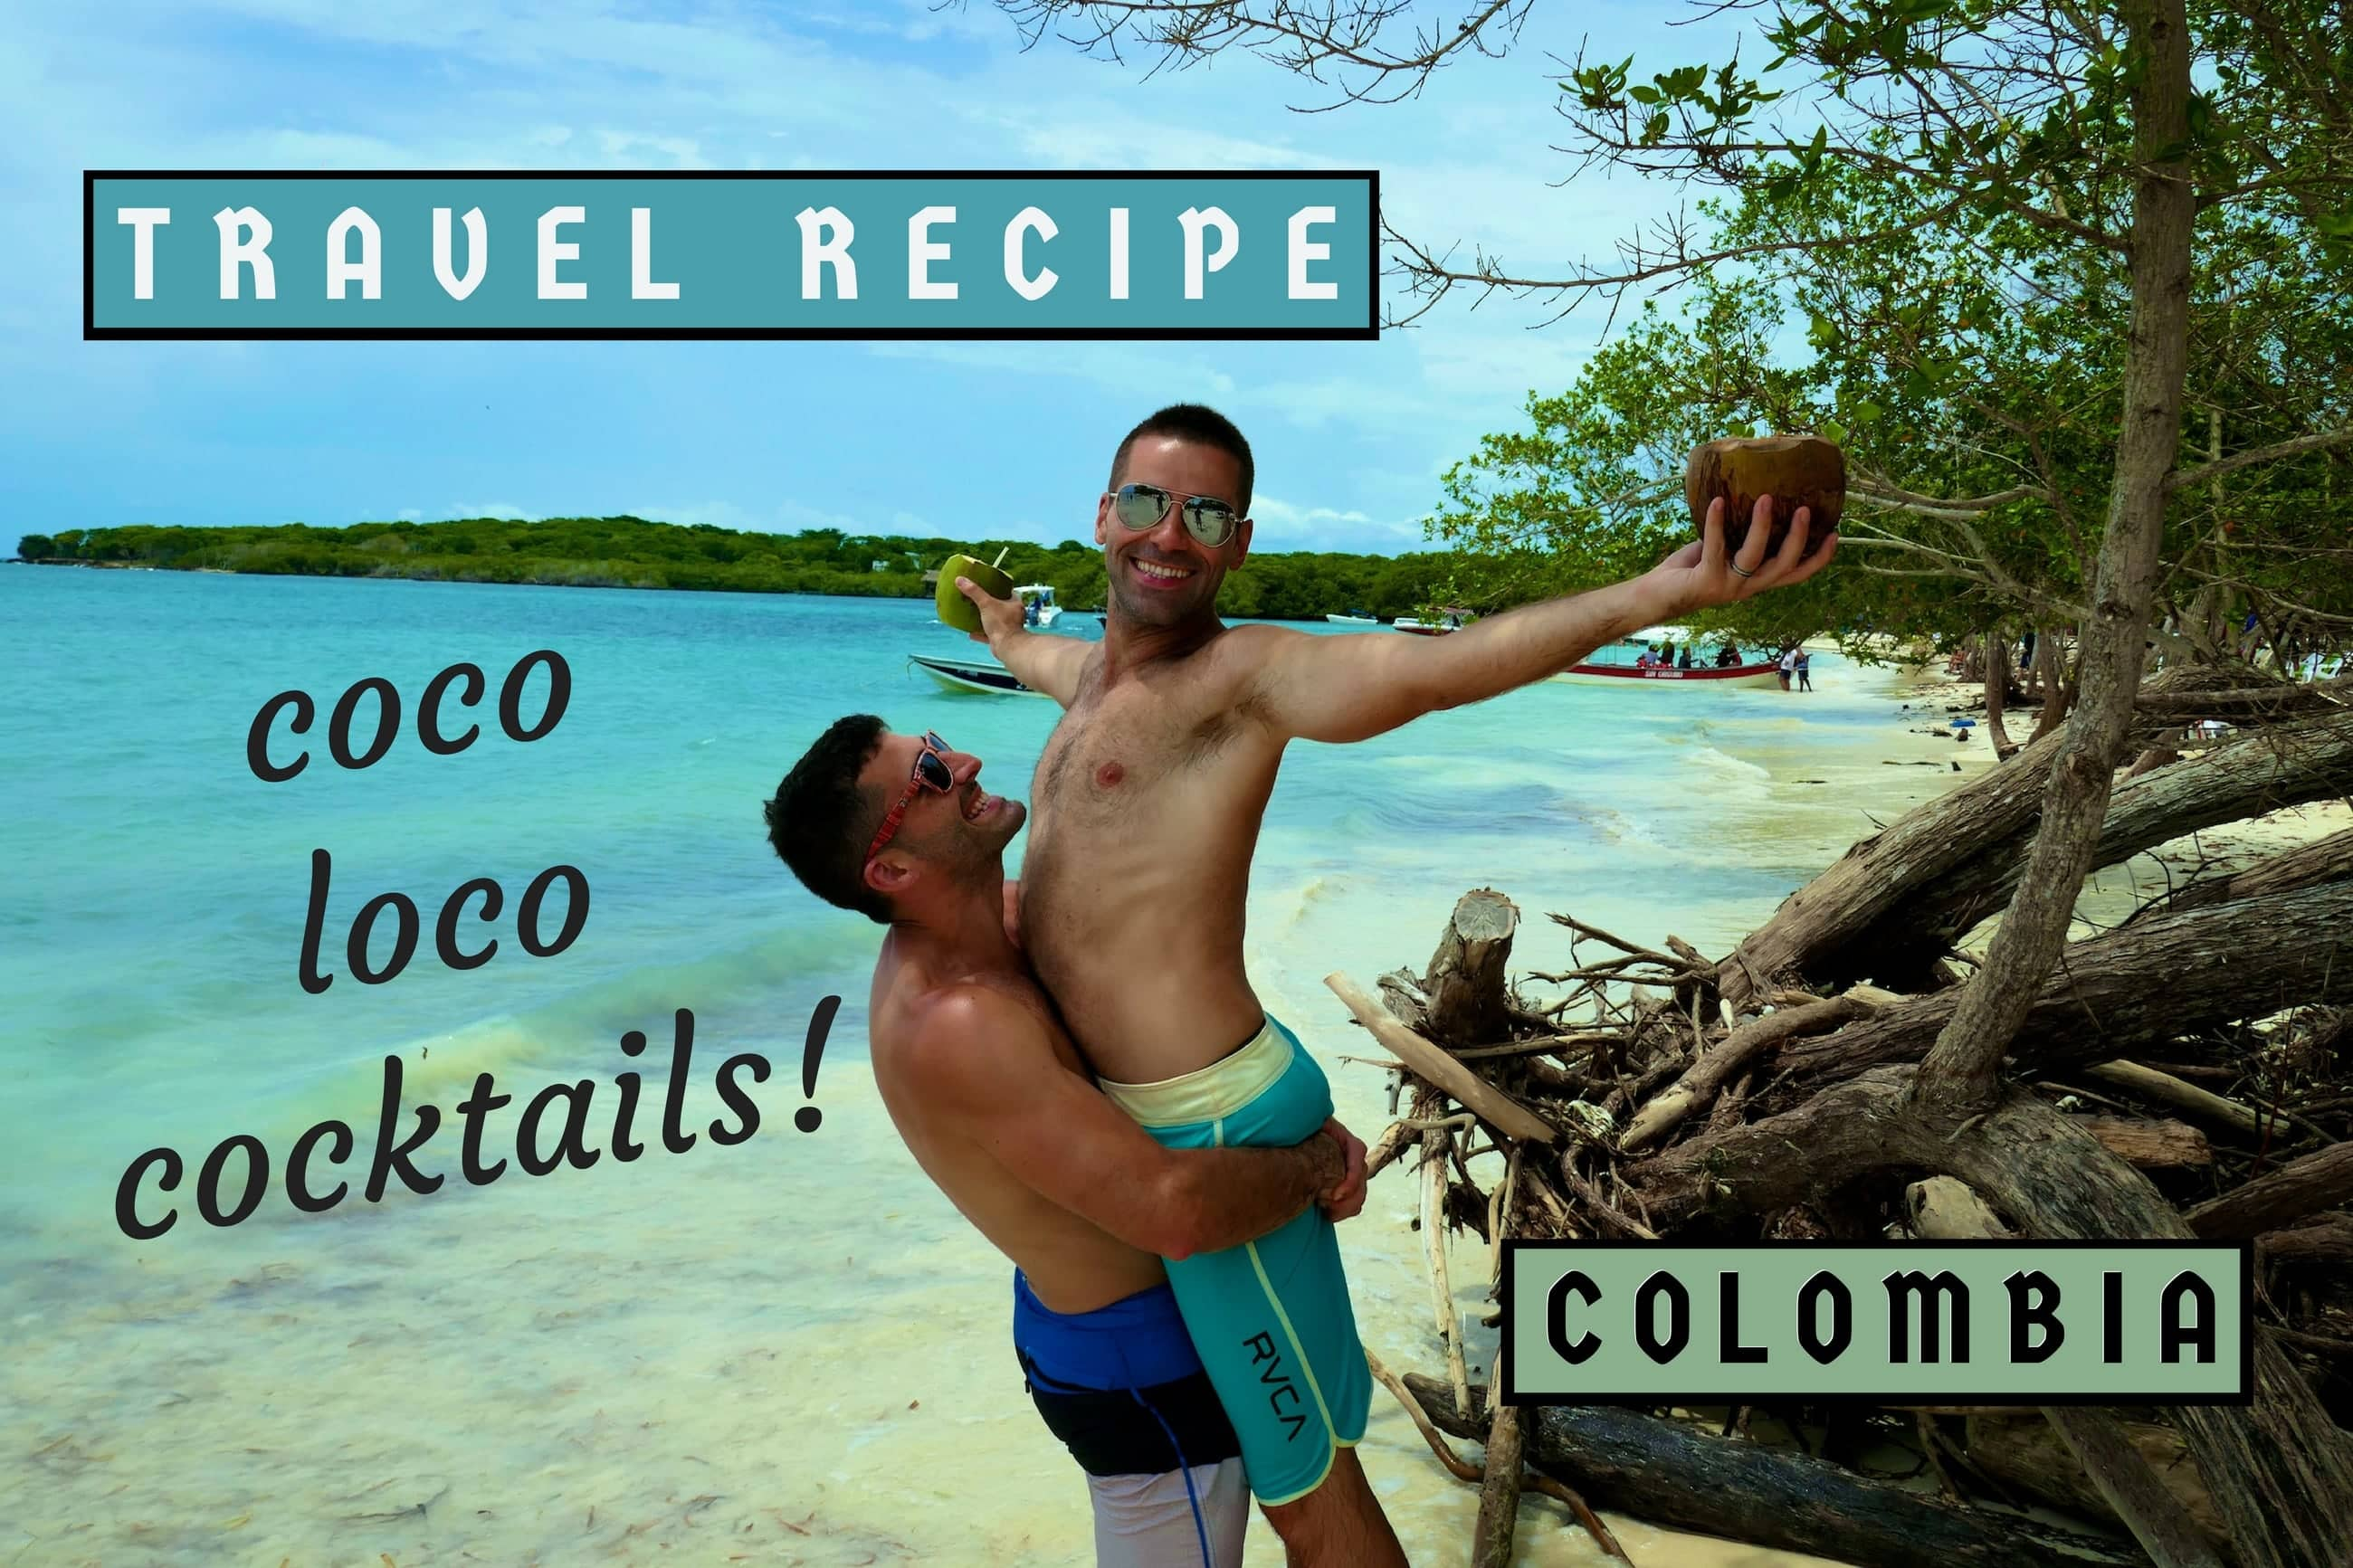 Recipe for Colombian coco loco cocktails